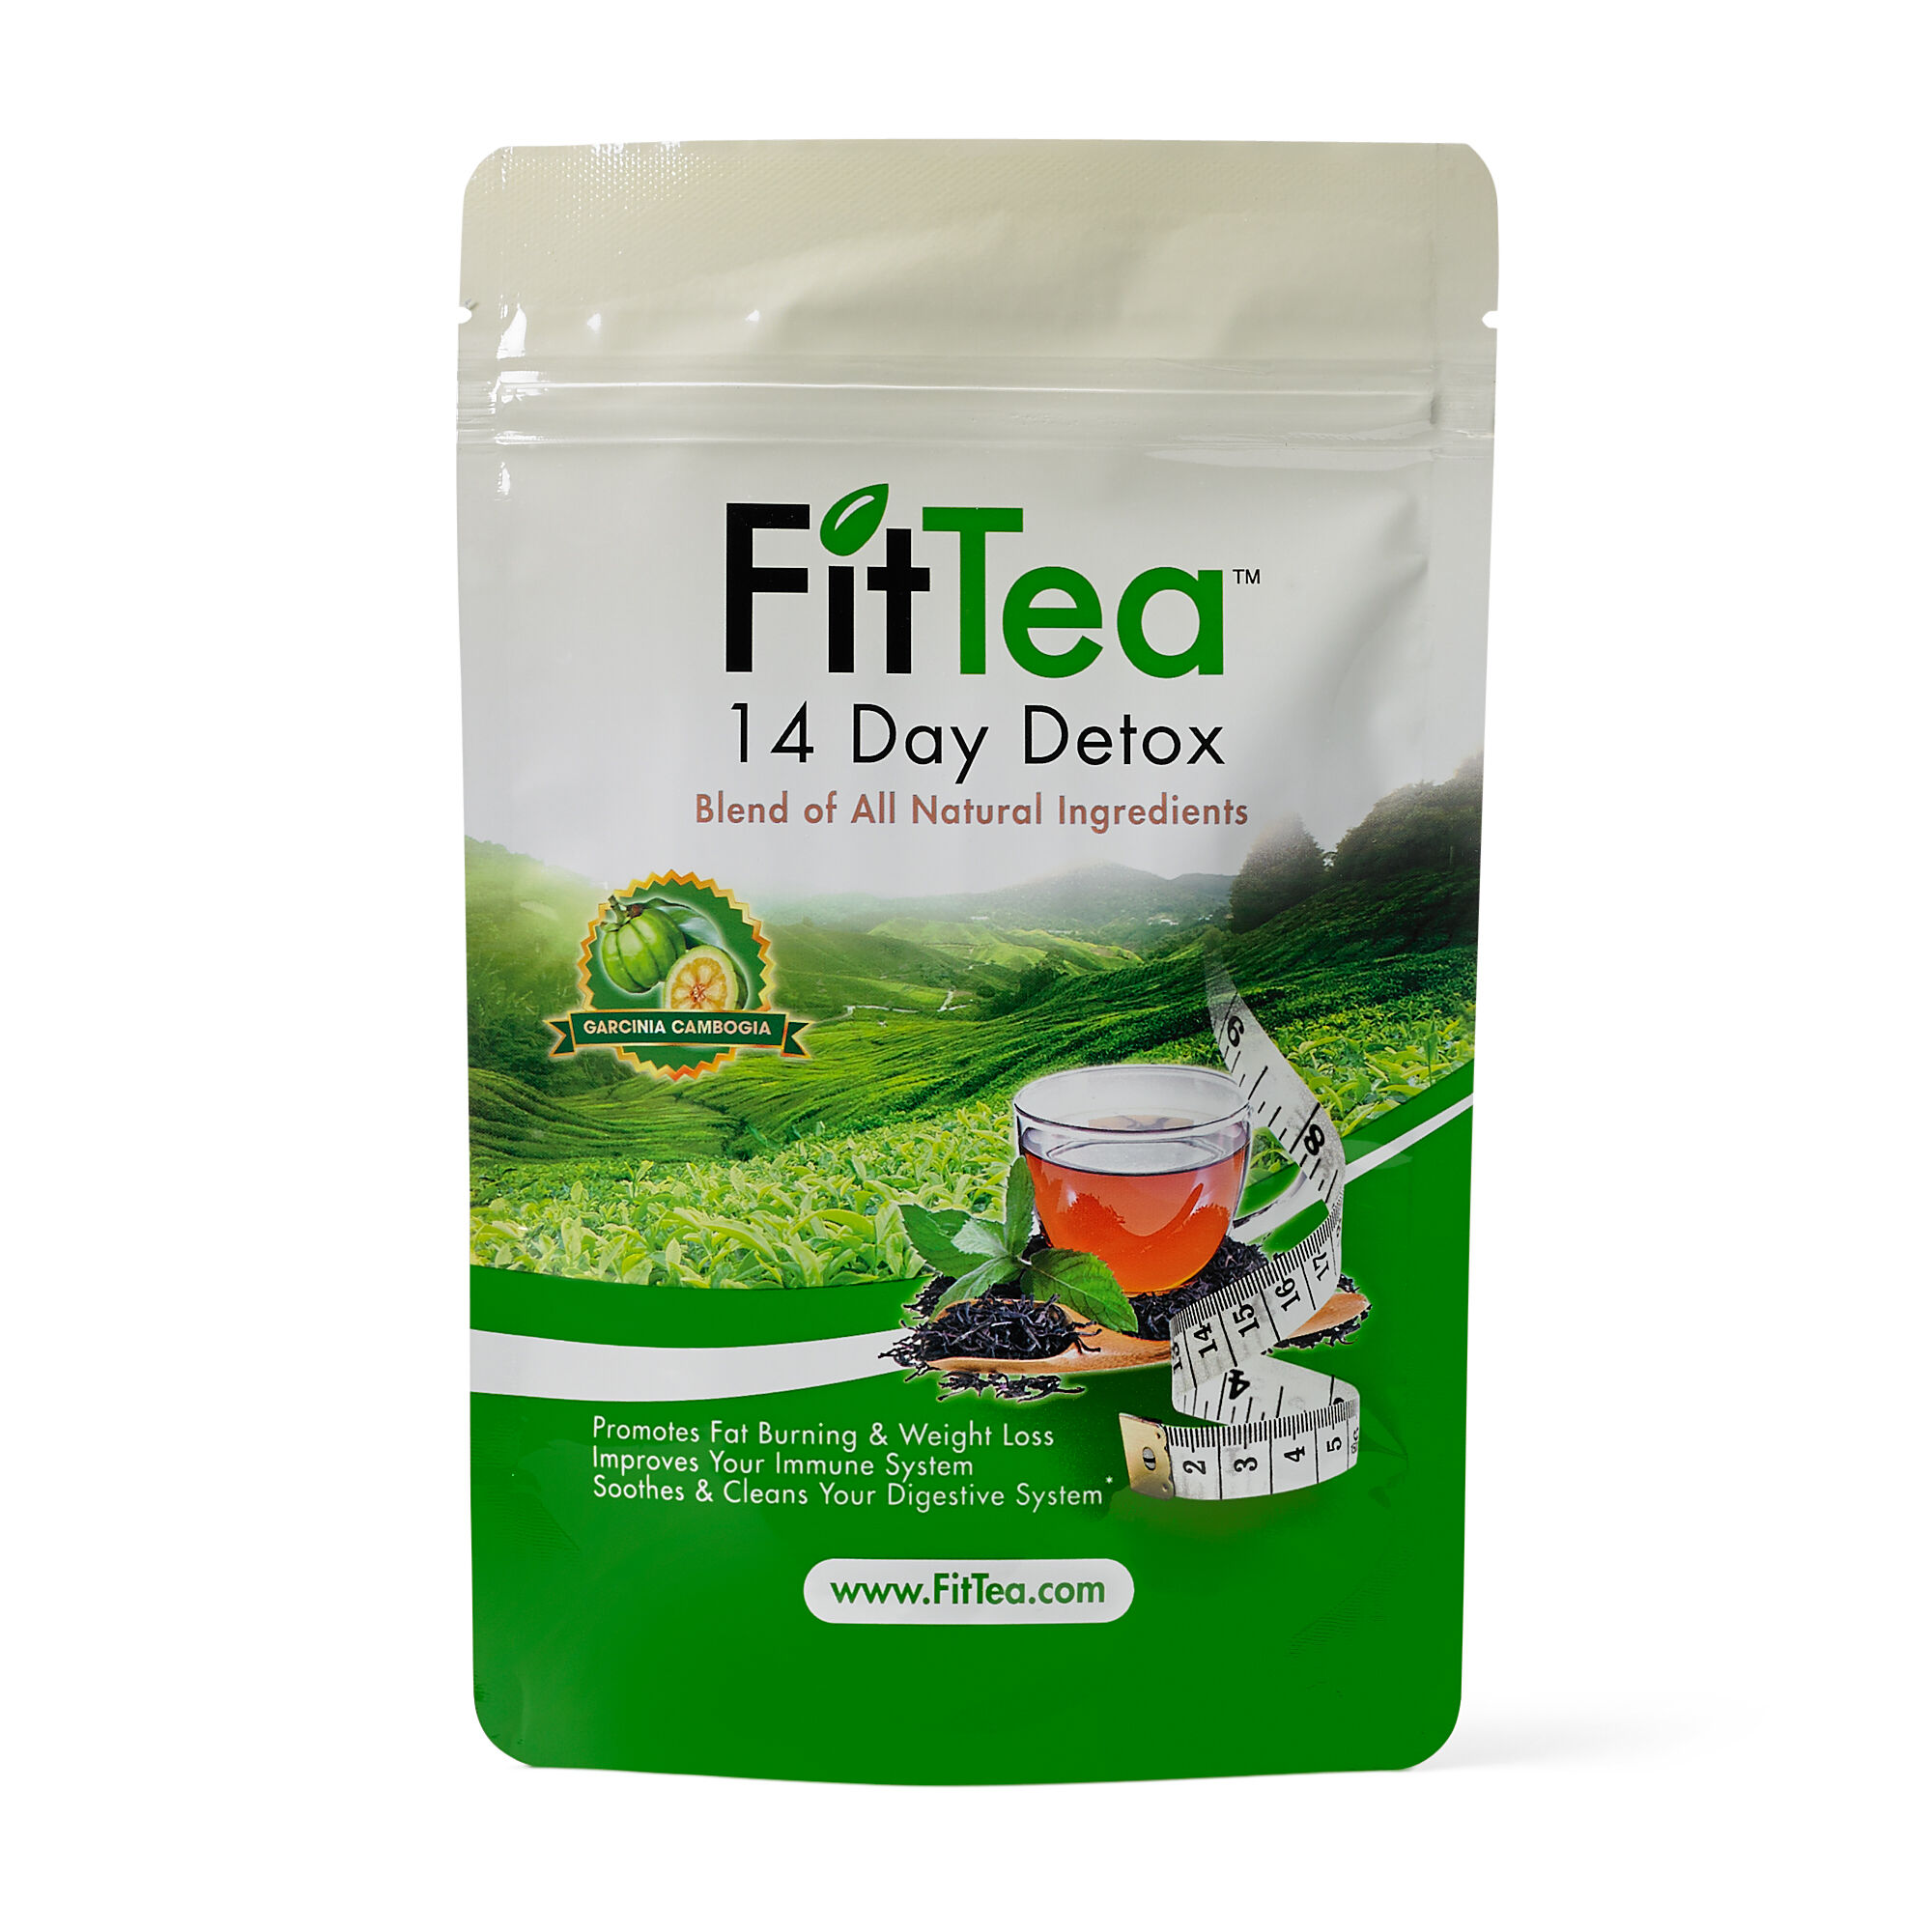 Fittea 14 Day Detox Gnc